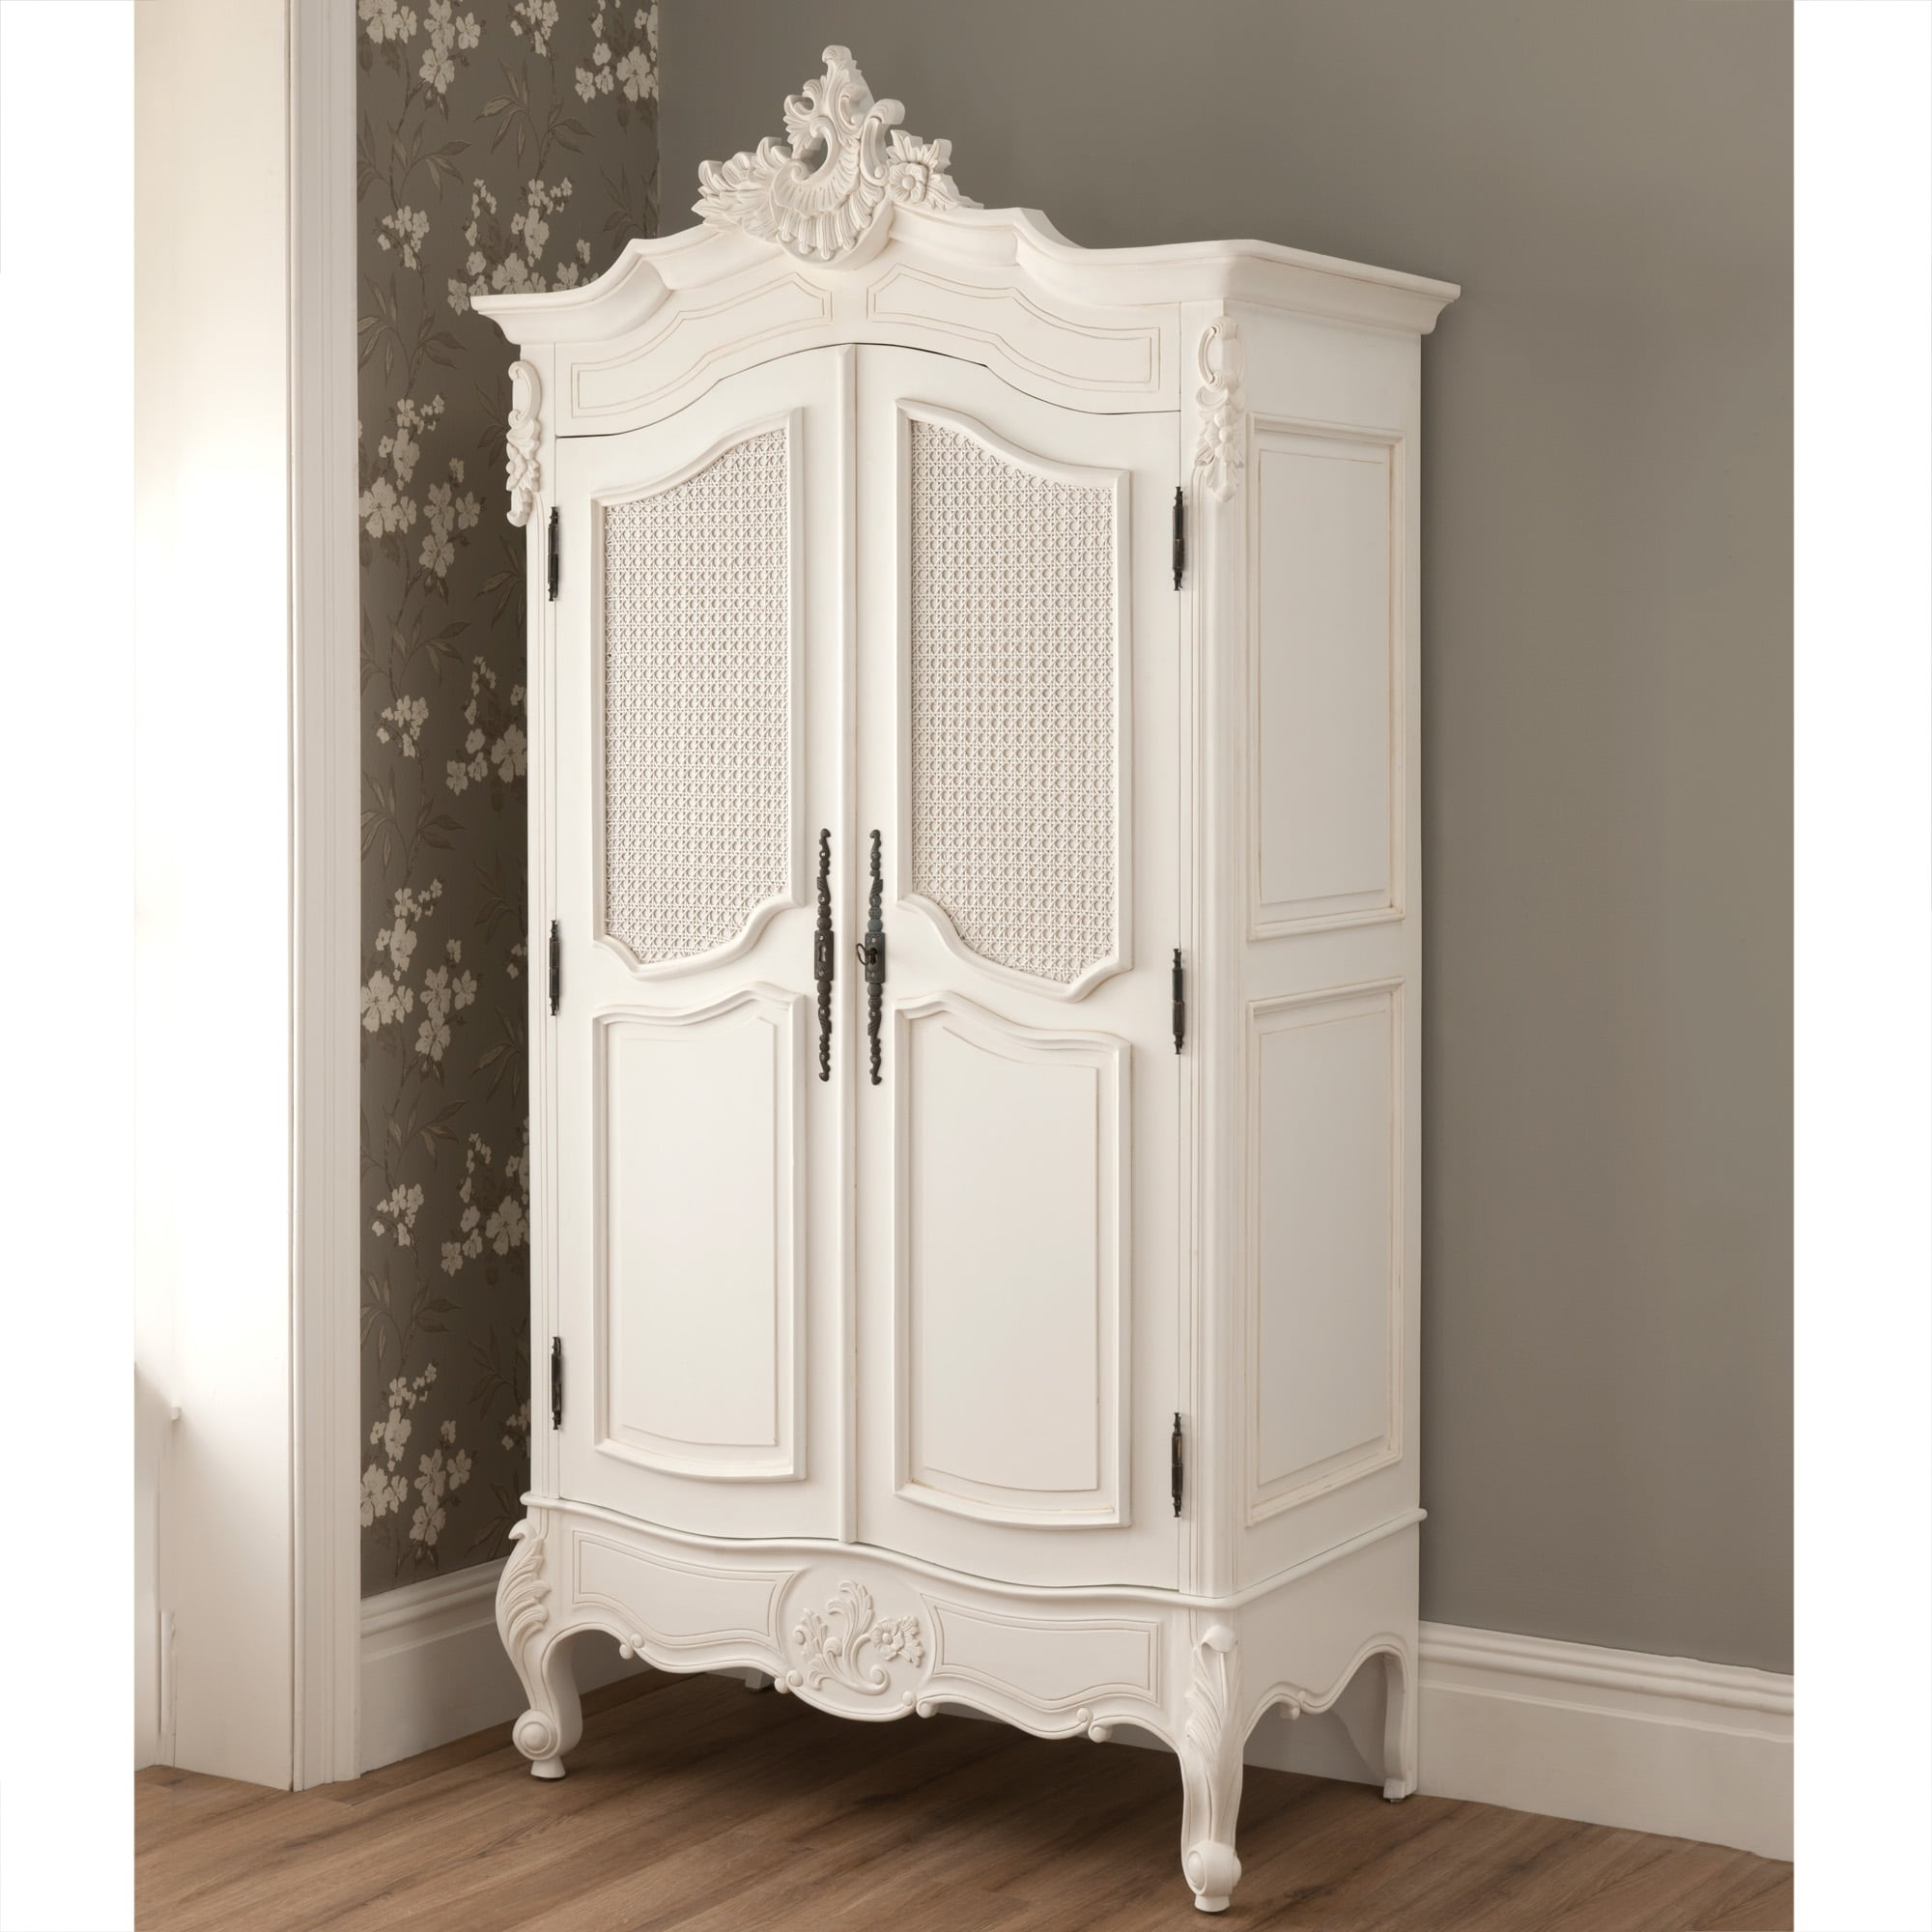 la rochelle 2 door antique french rattan wardrobe. Black Bedroom Furniture Sets. Home Design Ideas